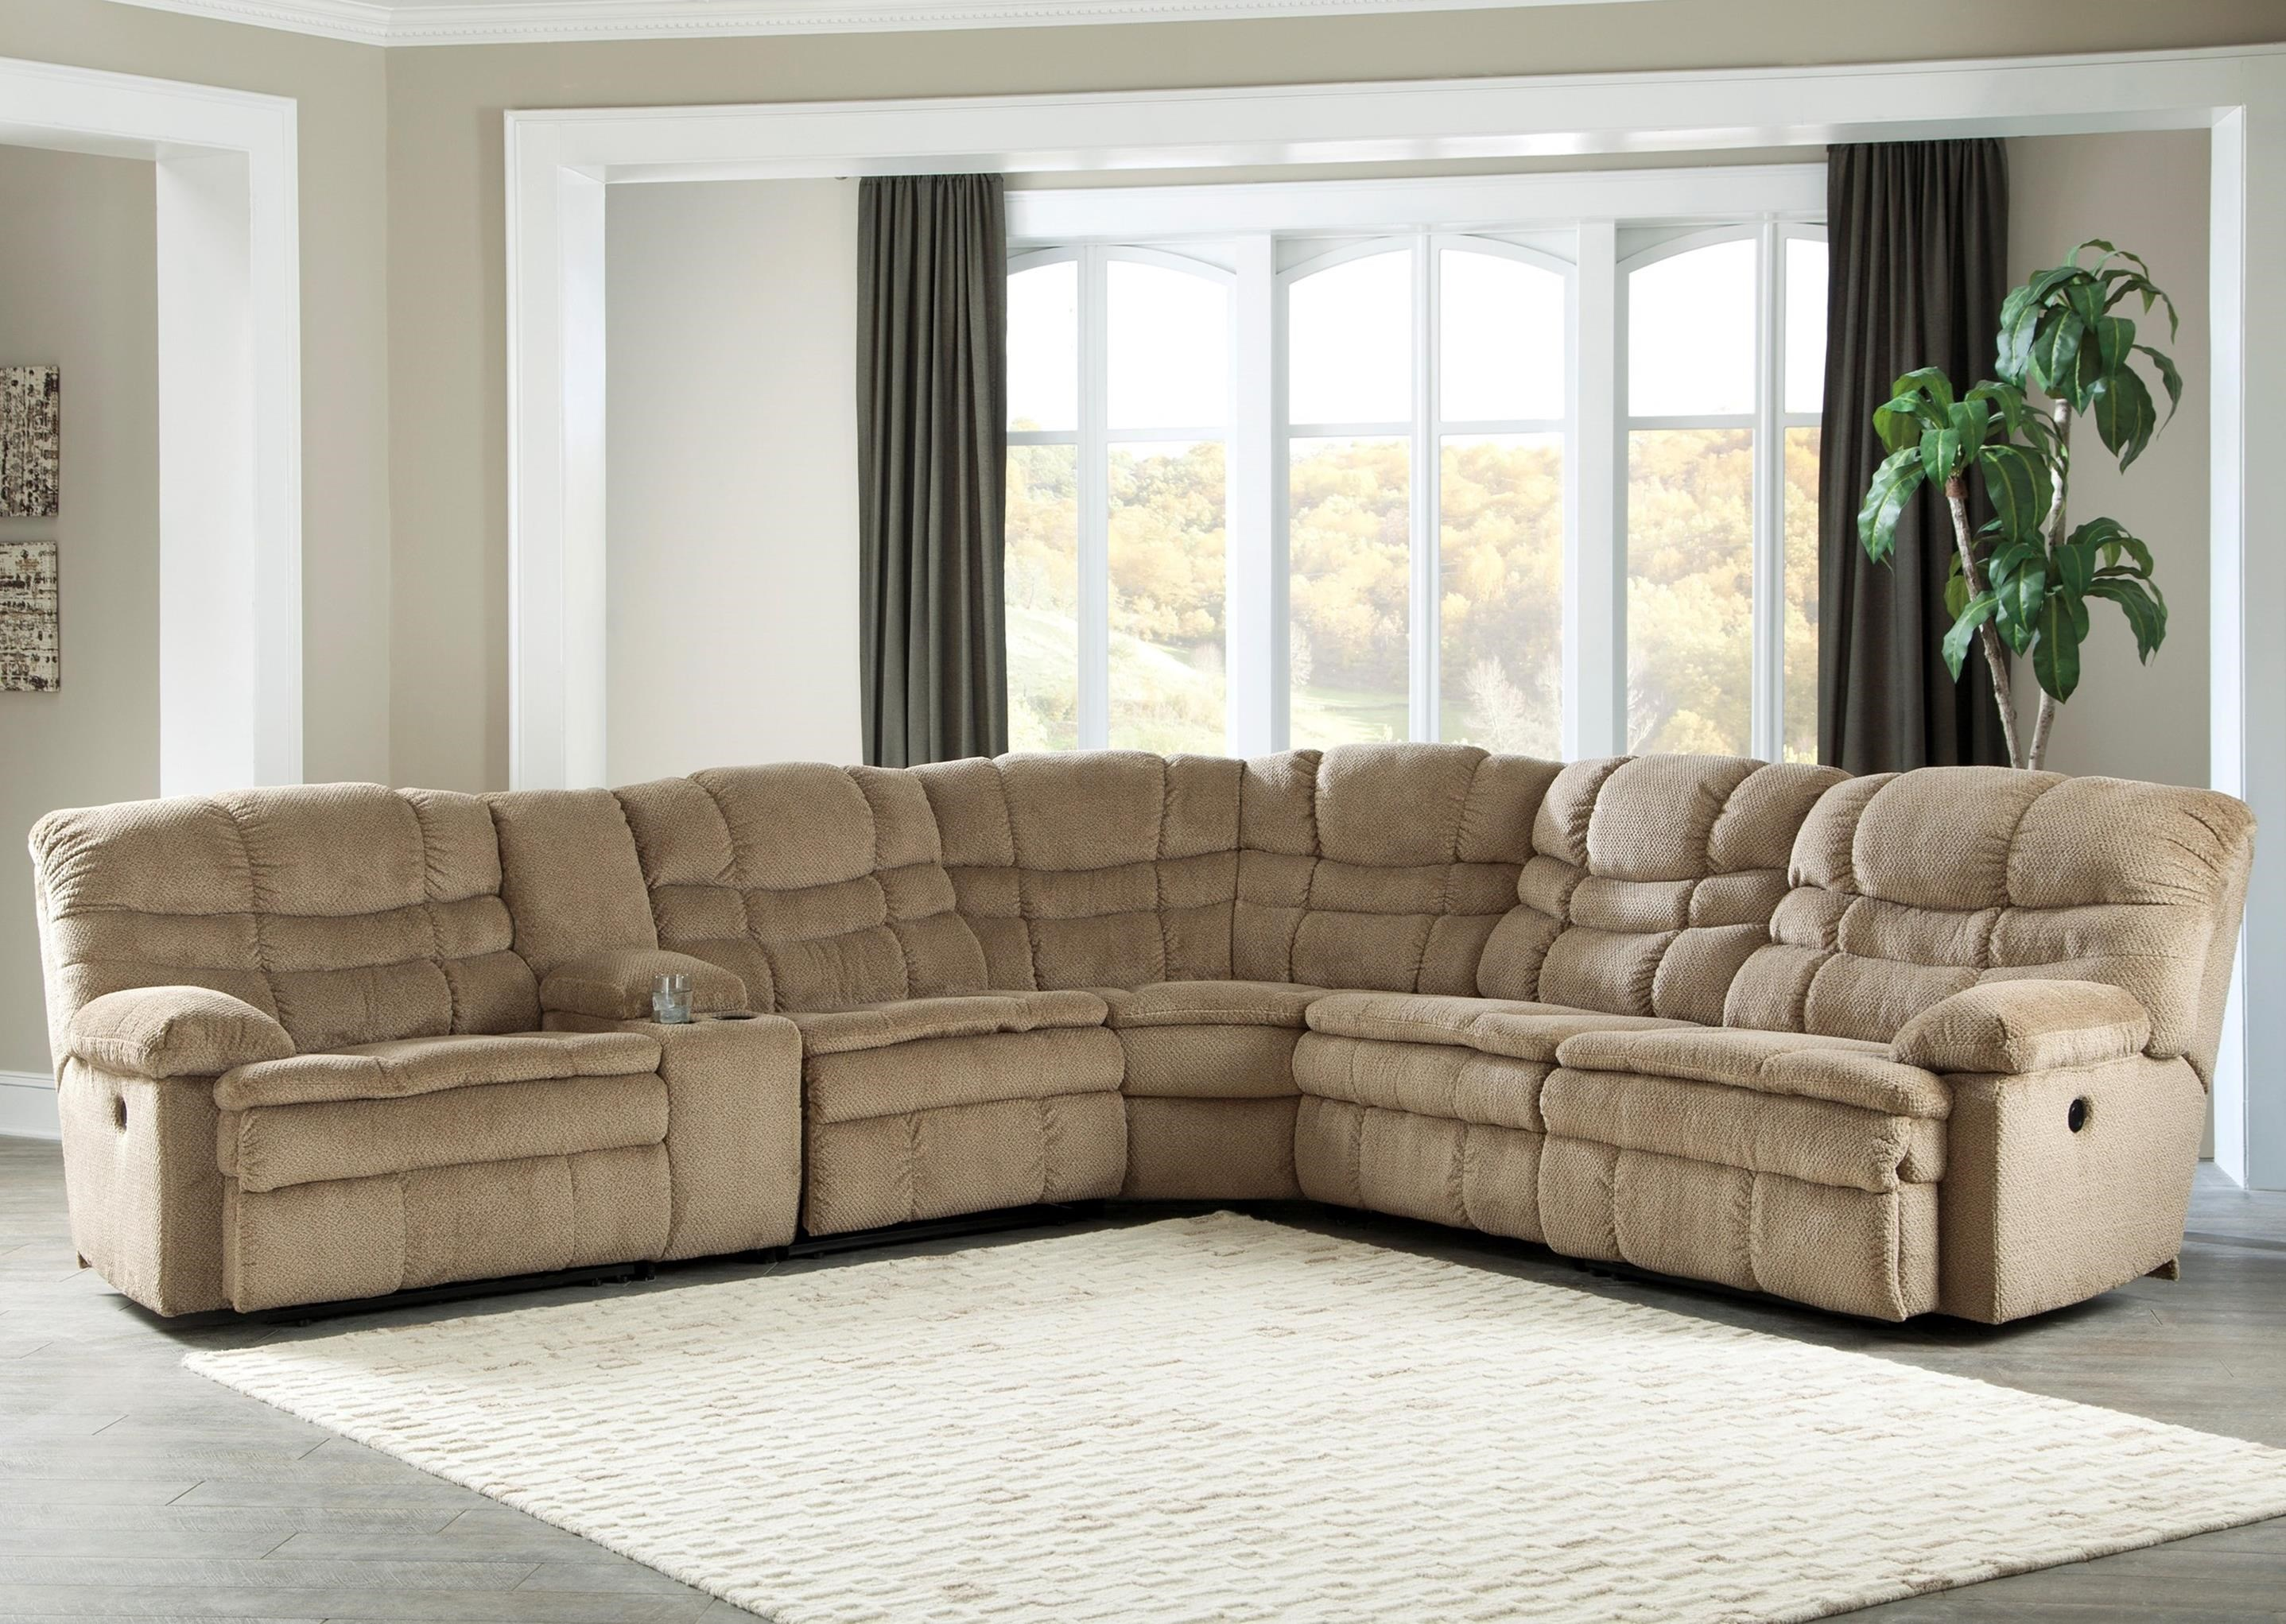 Signature Design by Ashley Zavion 6Pc Power Recl Sectional w/ Storage Console - Item Number: 6630358+57+19+77+46+62